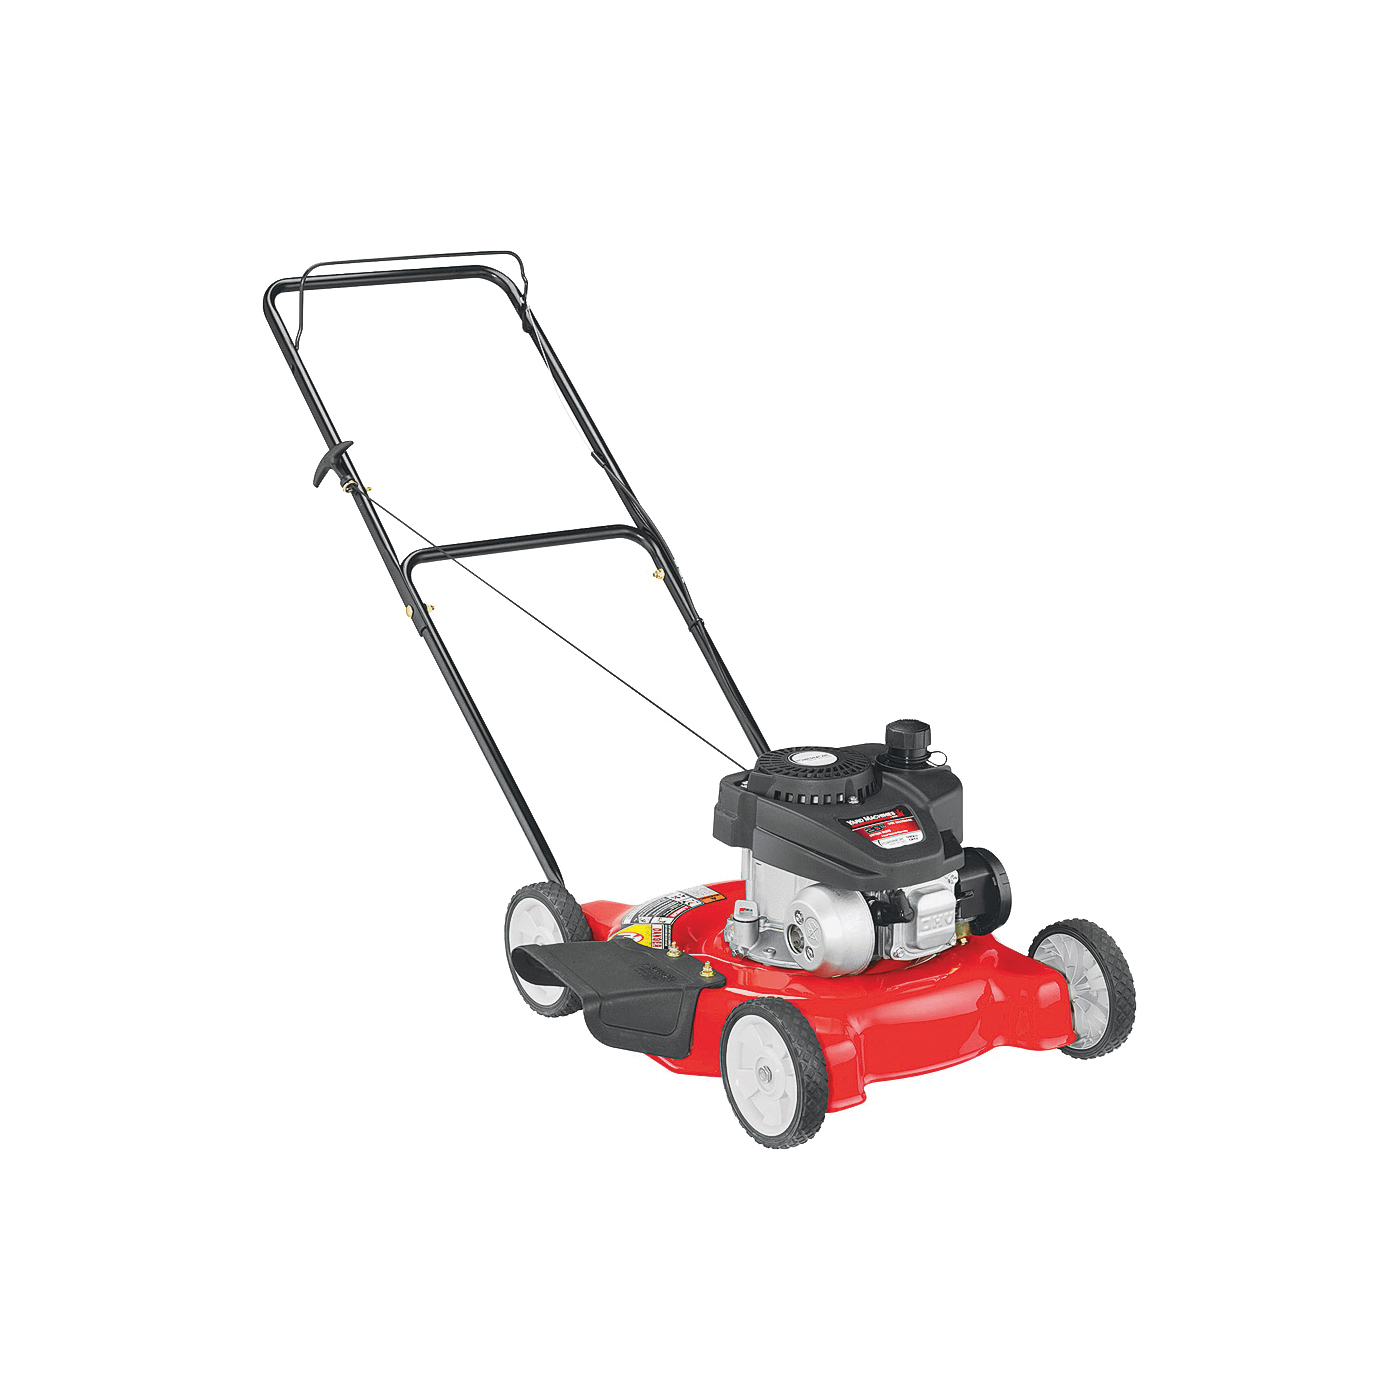 Picture of Yard Machines 11A-02SB700 Push Mower, 140 cc Engine Displacement, Gasoline, 20 in W Cutting, Recoil Start